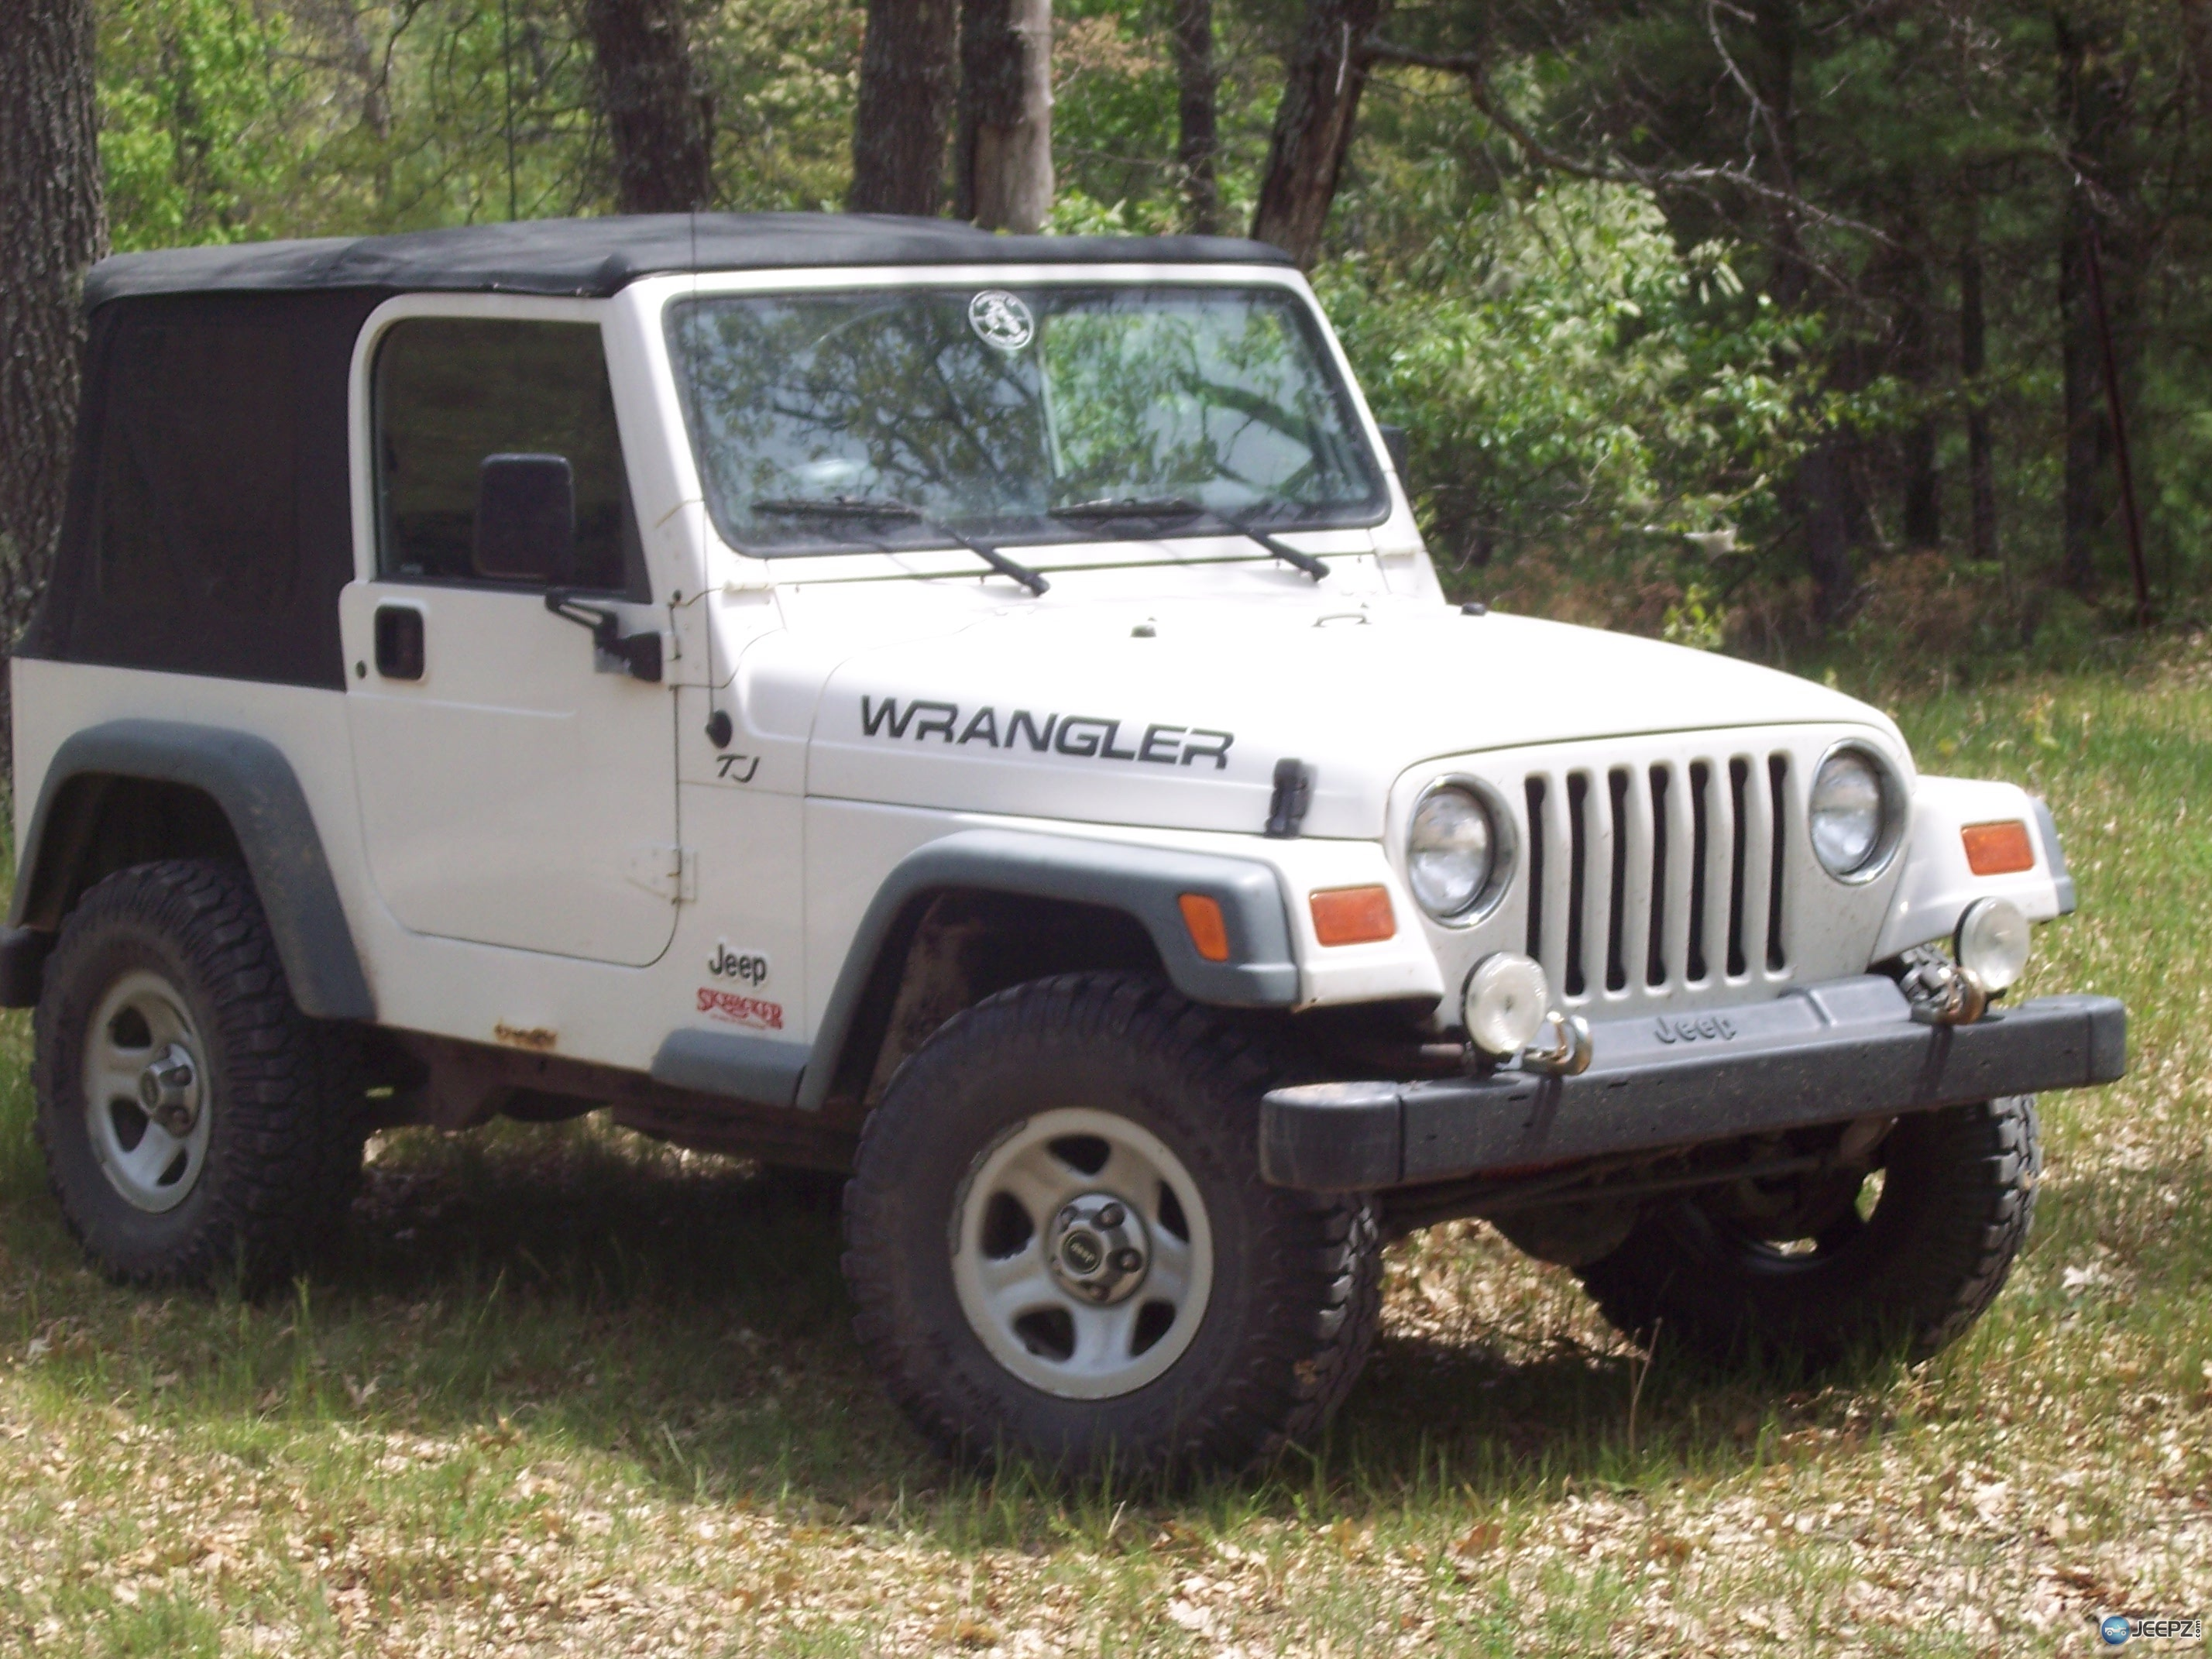 what's the height of a stock wrangler?